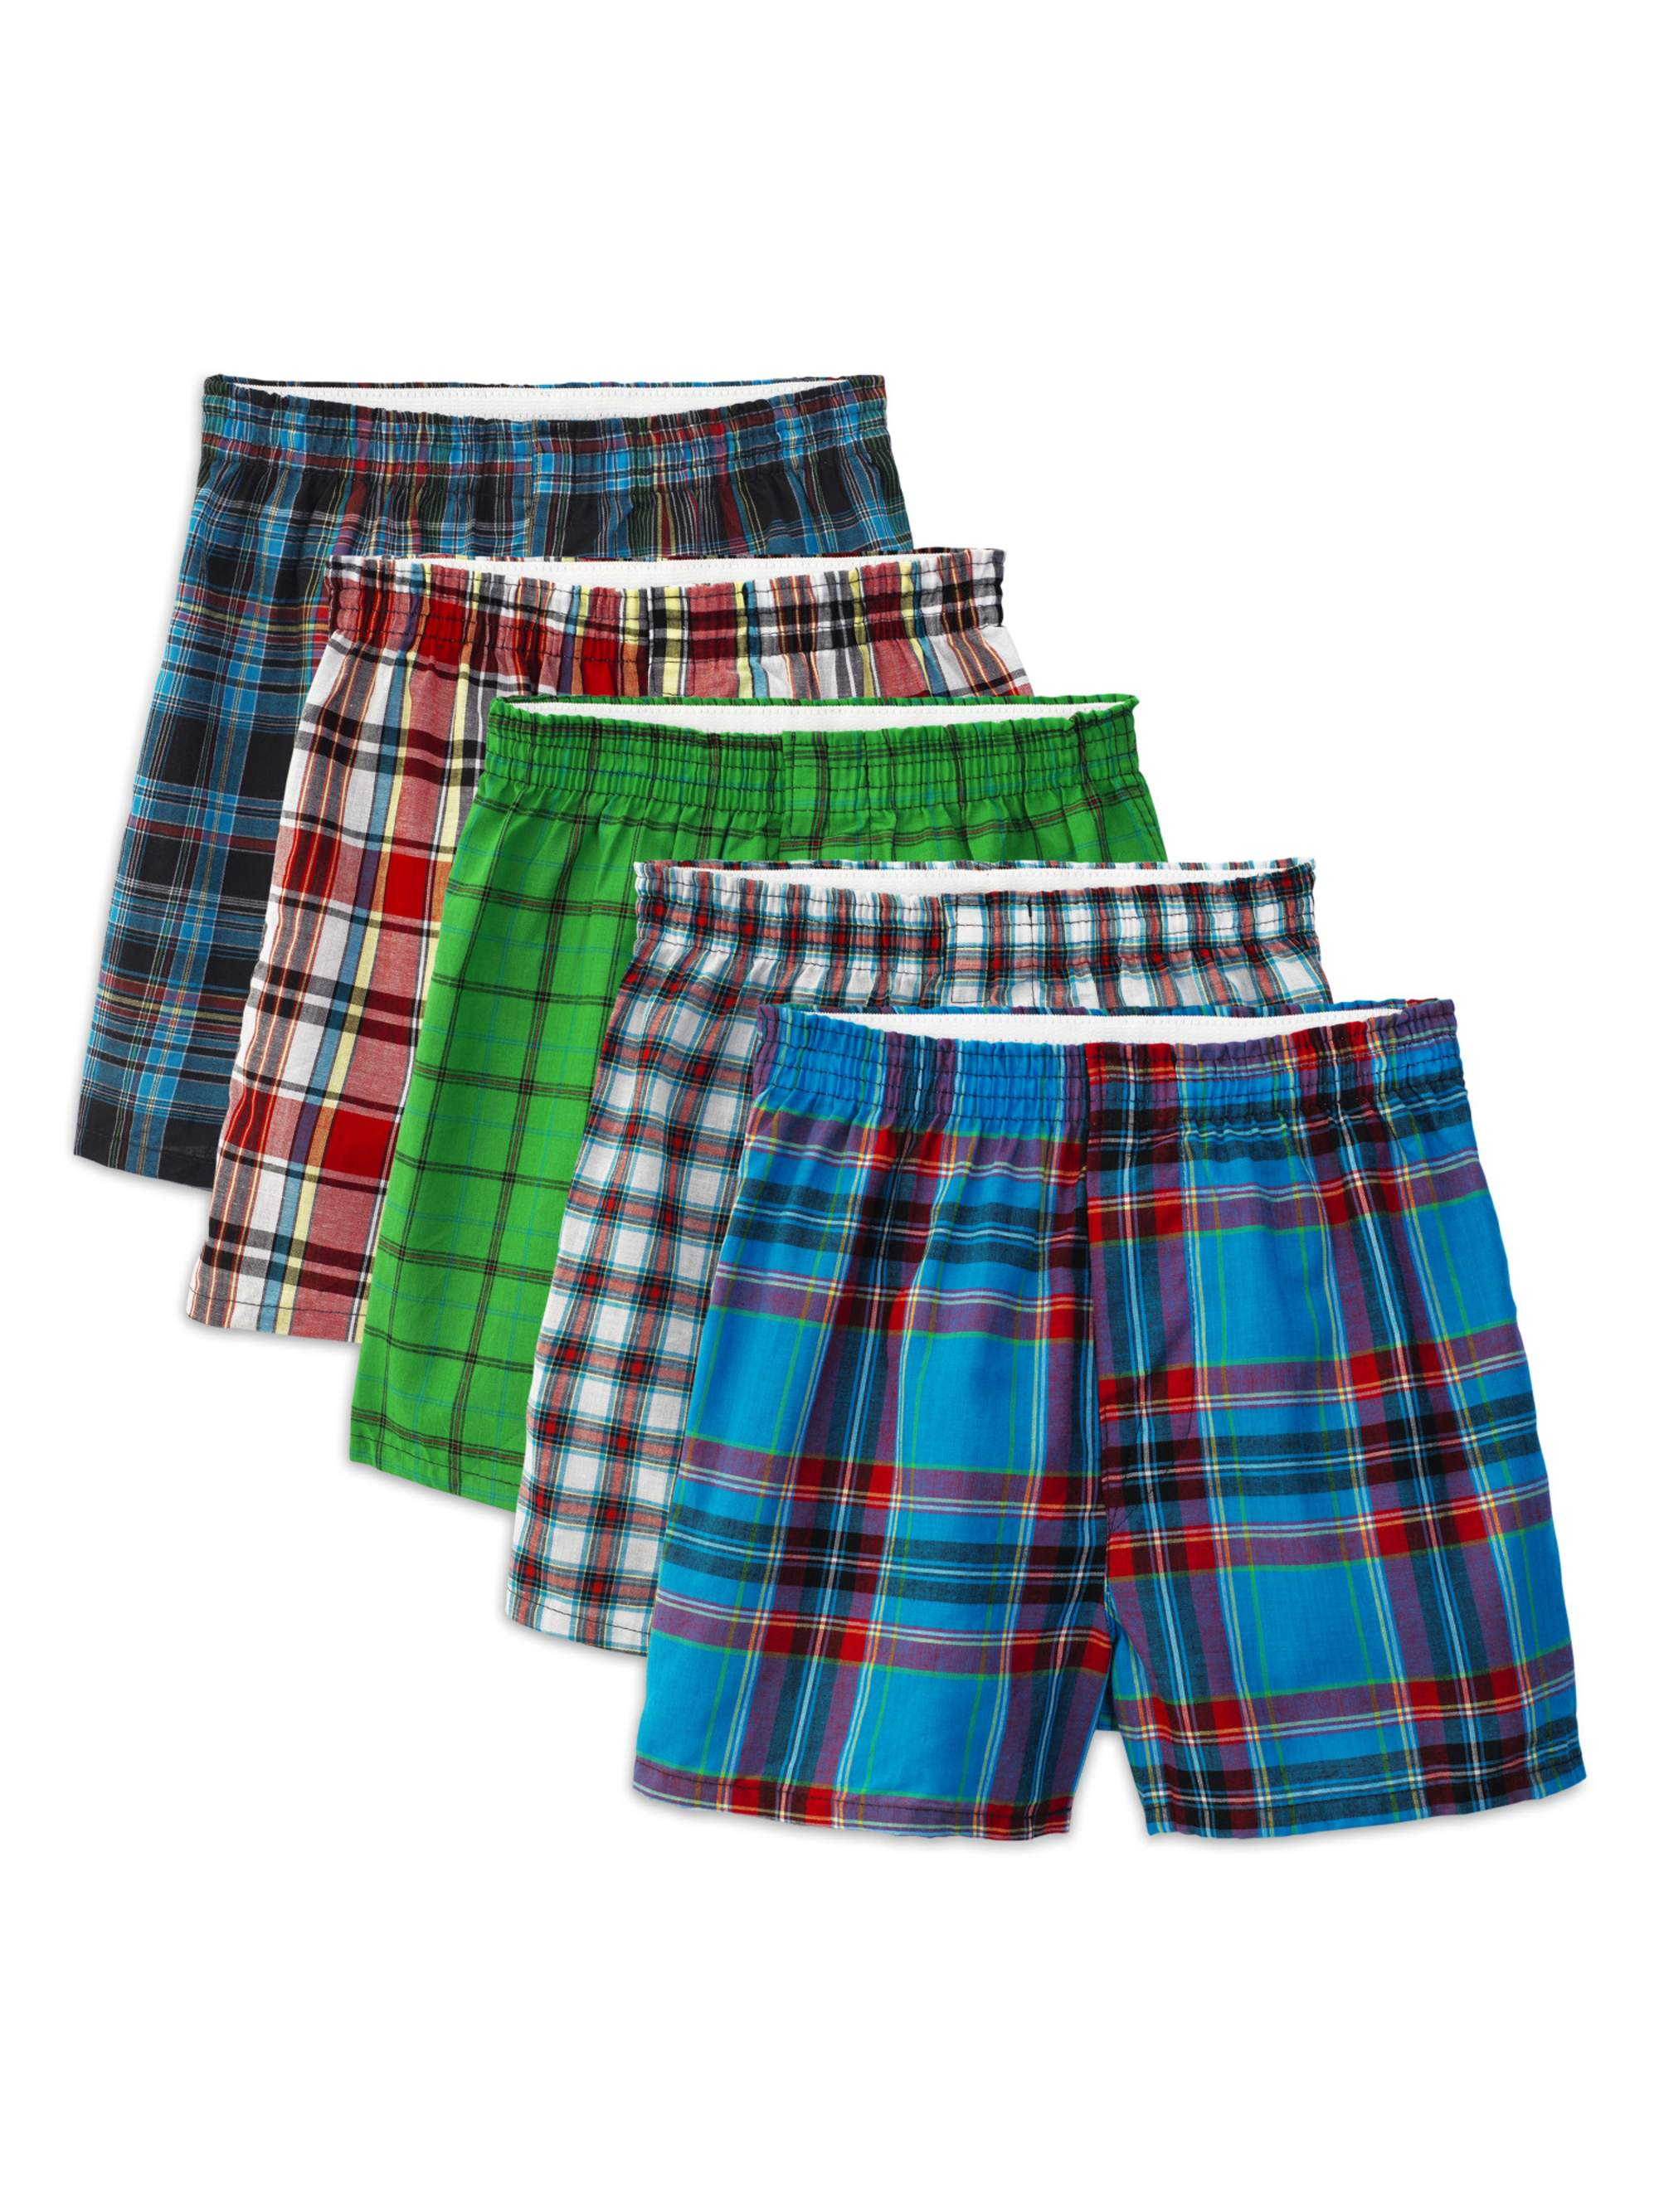 Fruit of the Loom Tartan Plaid Woven Boxers, 5 Pack (Big Boys)